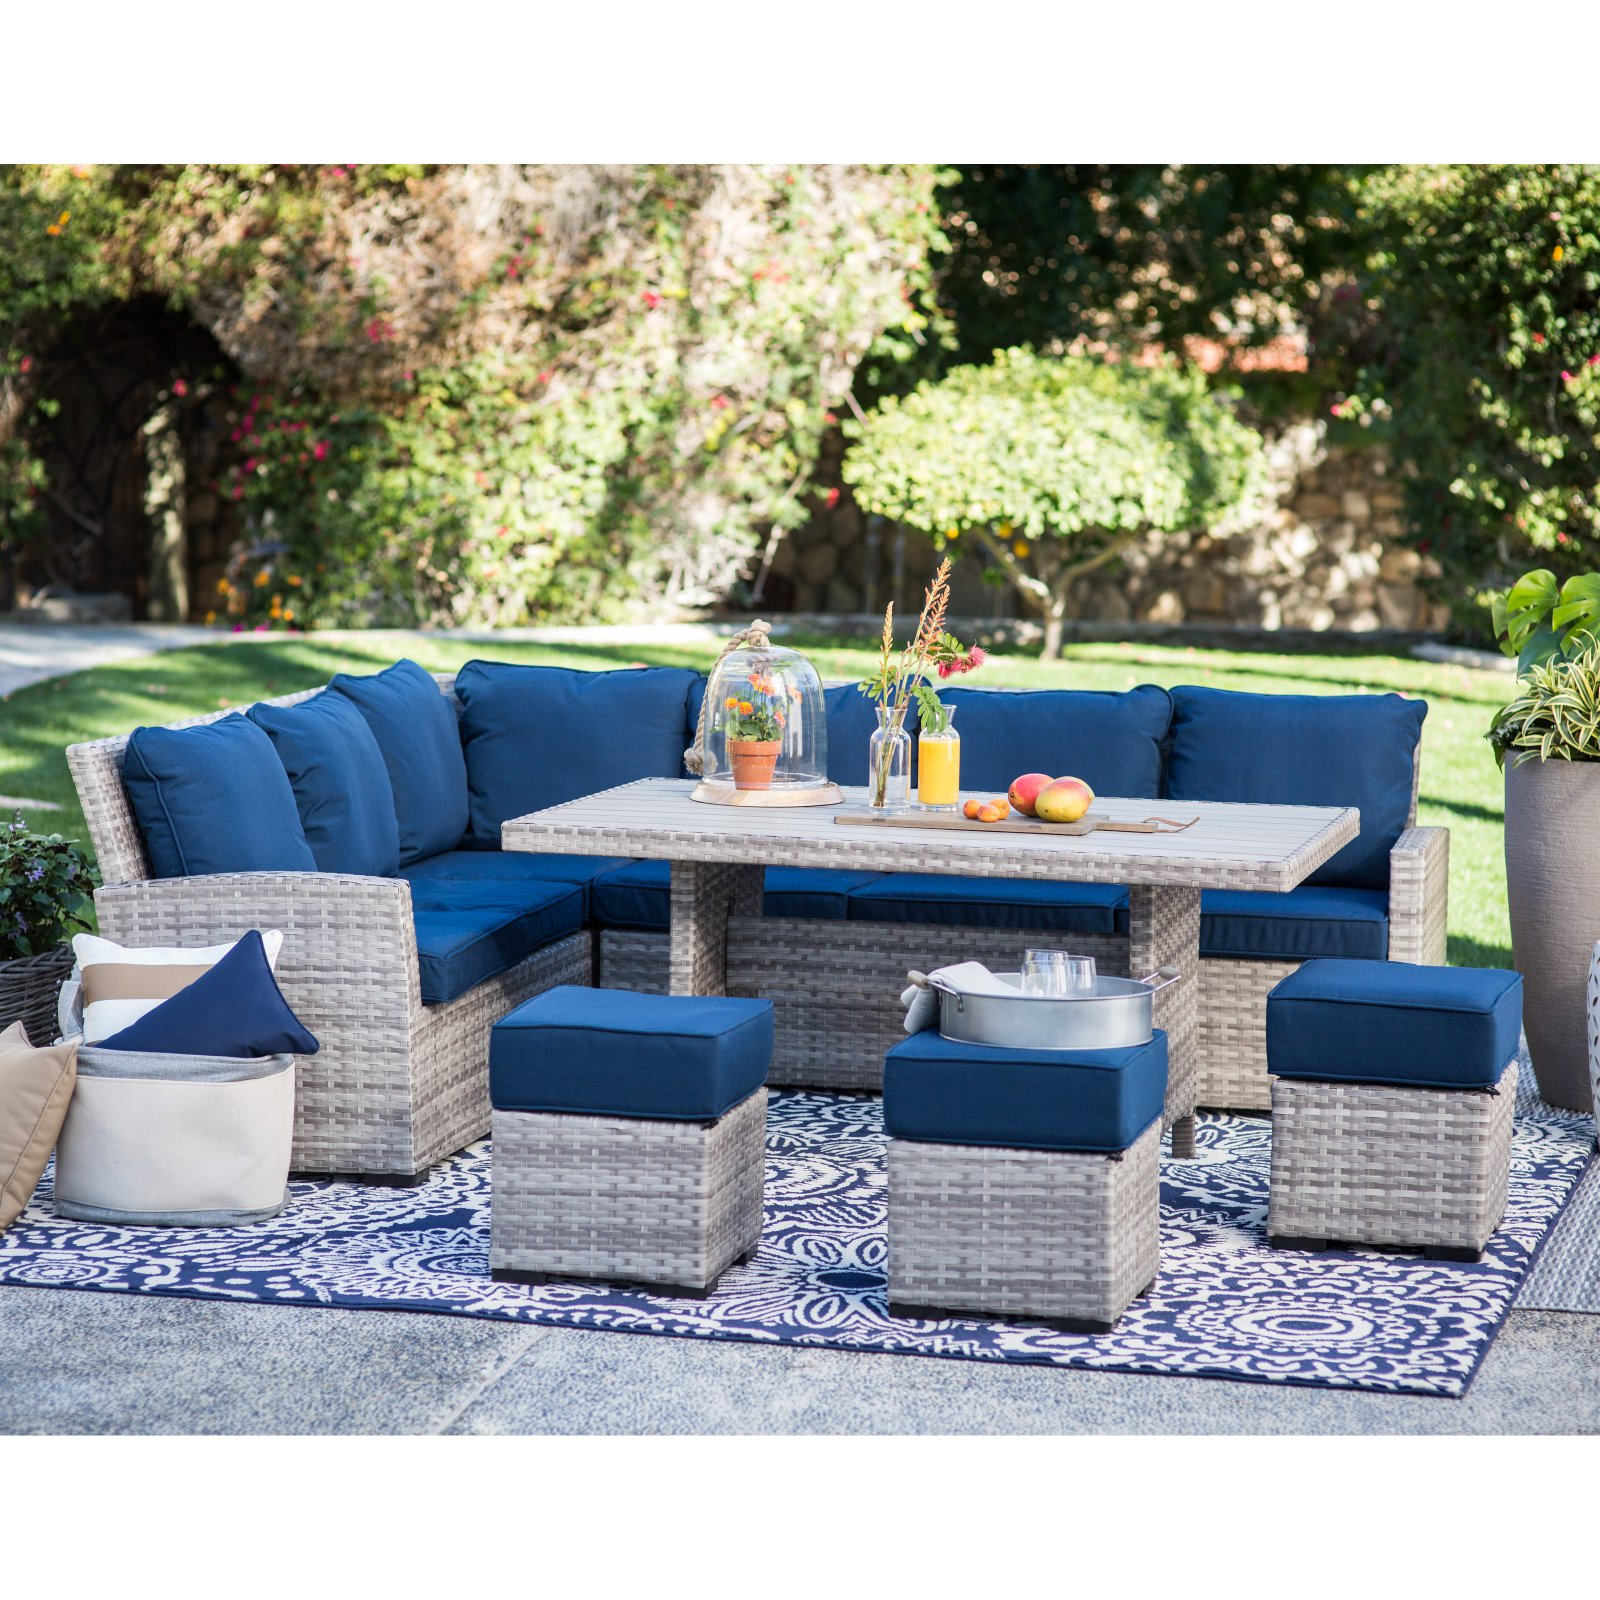 Superbe Belham Living Brookville 6 Piece All Weather Wicker Sofa Sectional Patio  Dining Set